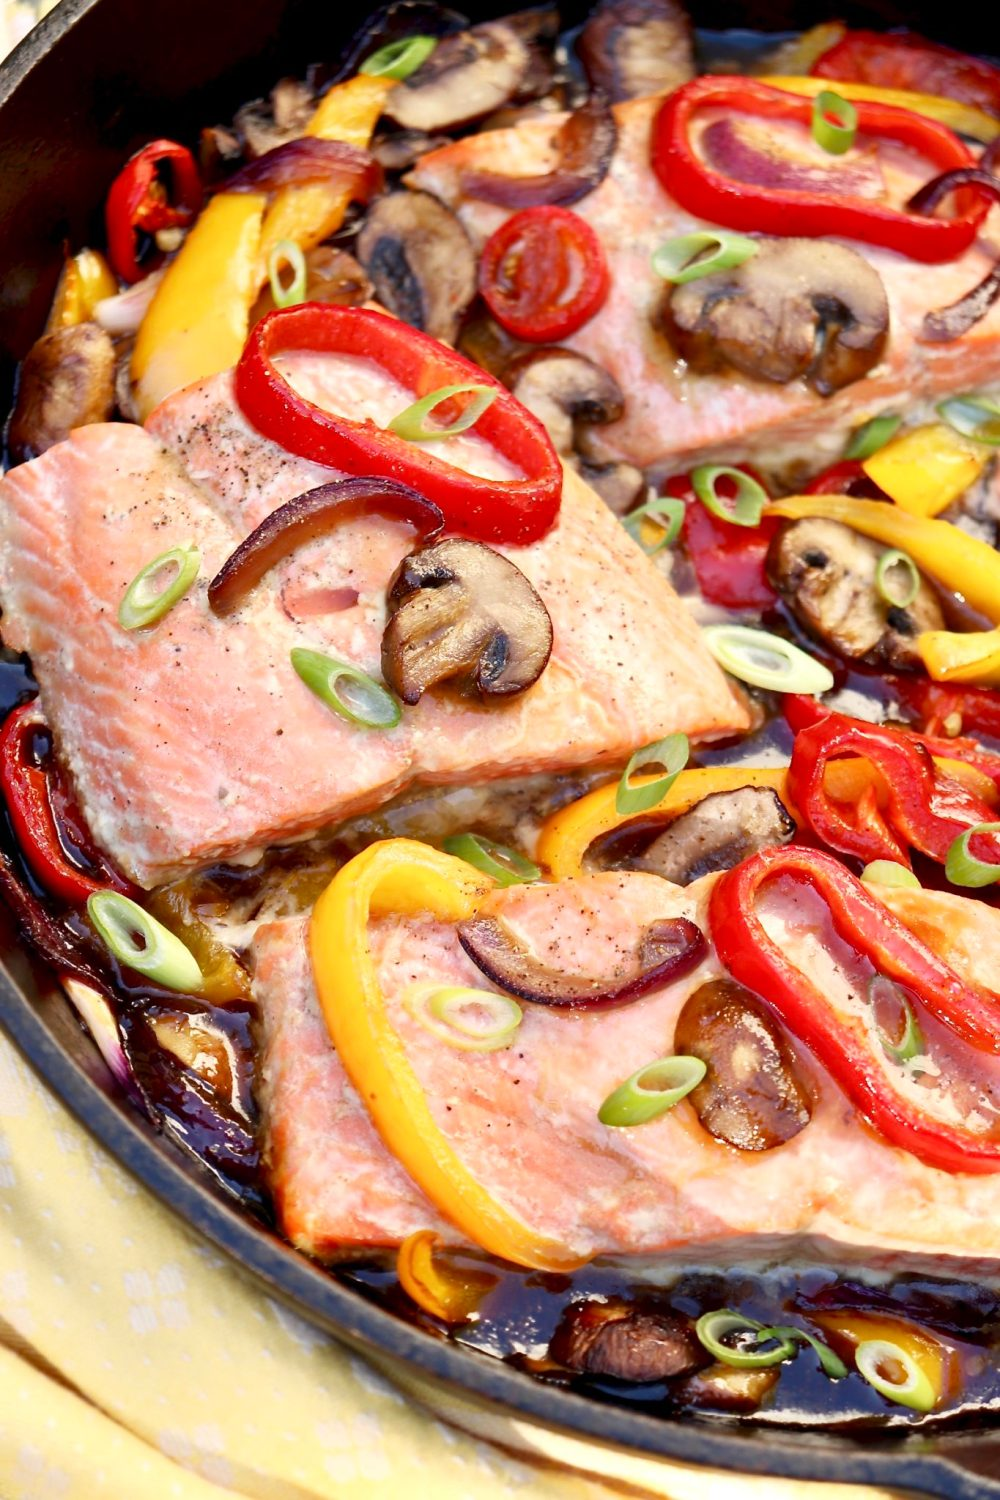 ONE PAN TERIYAKI SALMON & VEGETABLES -A shortcut ingredient adds ease and loads of flavor to this heart-healthy, veggie-rich dinner that cooks in a single pan.